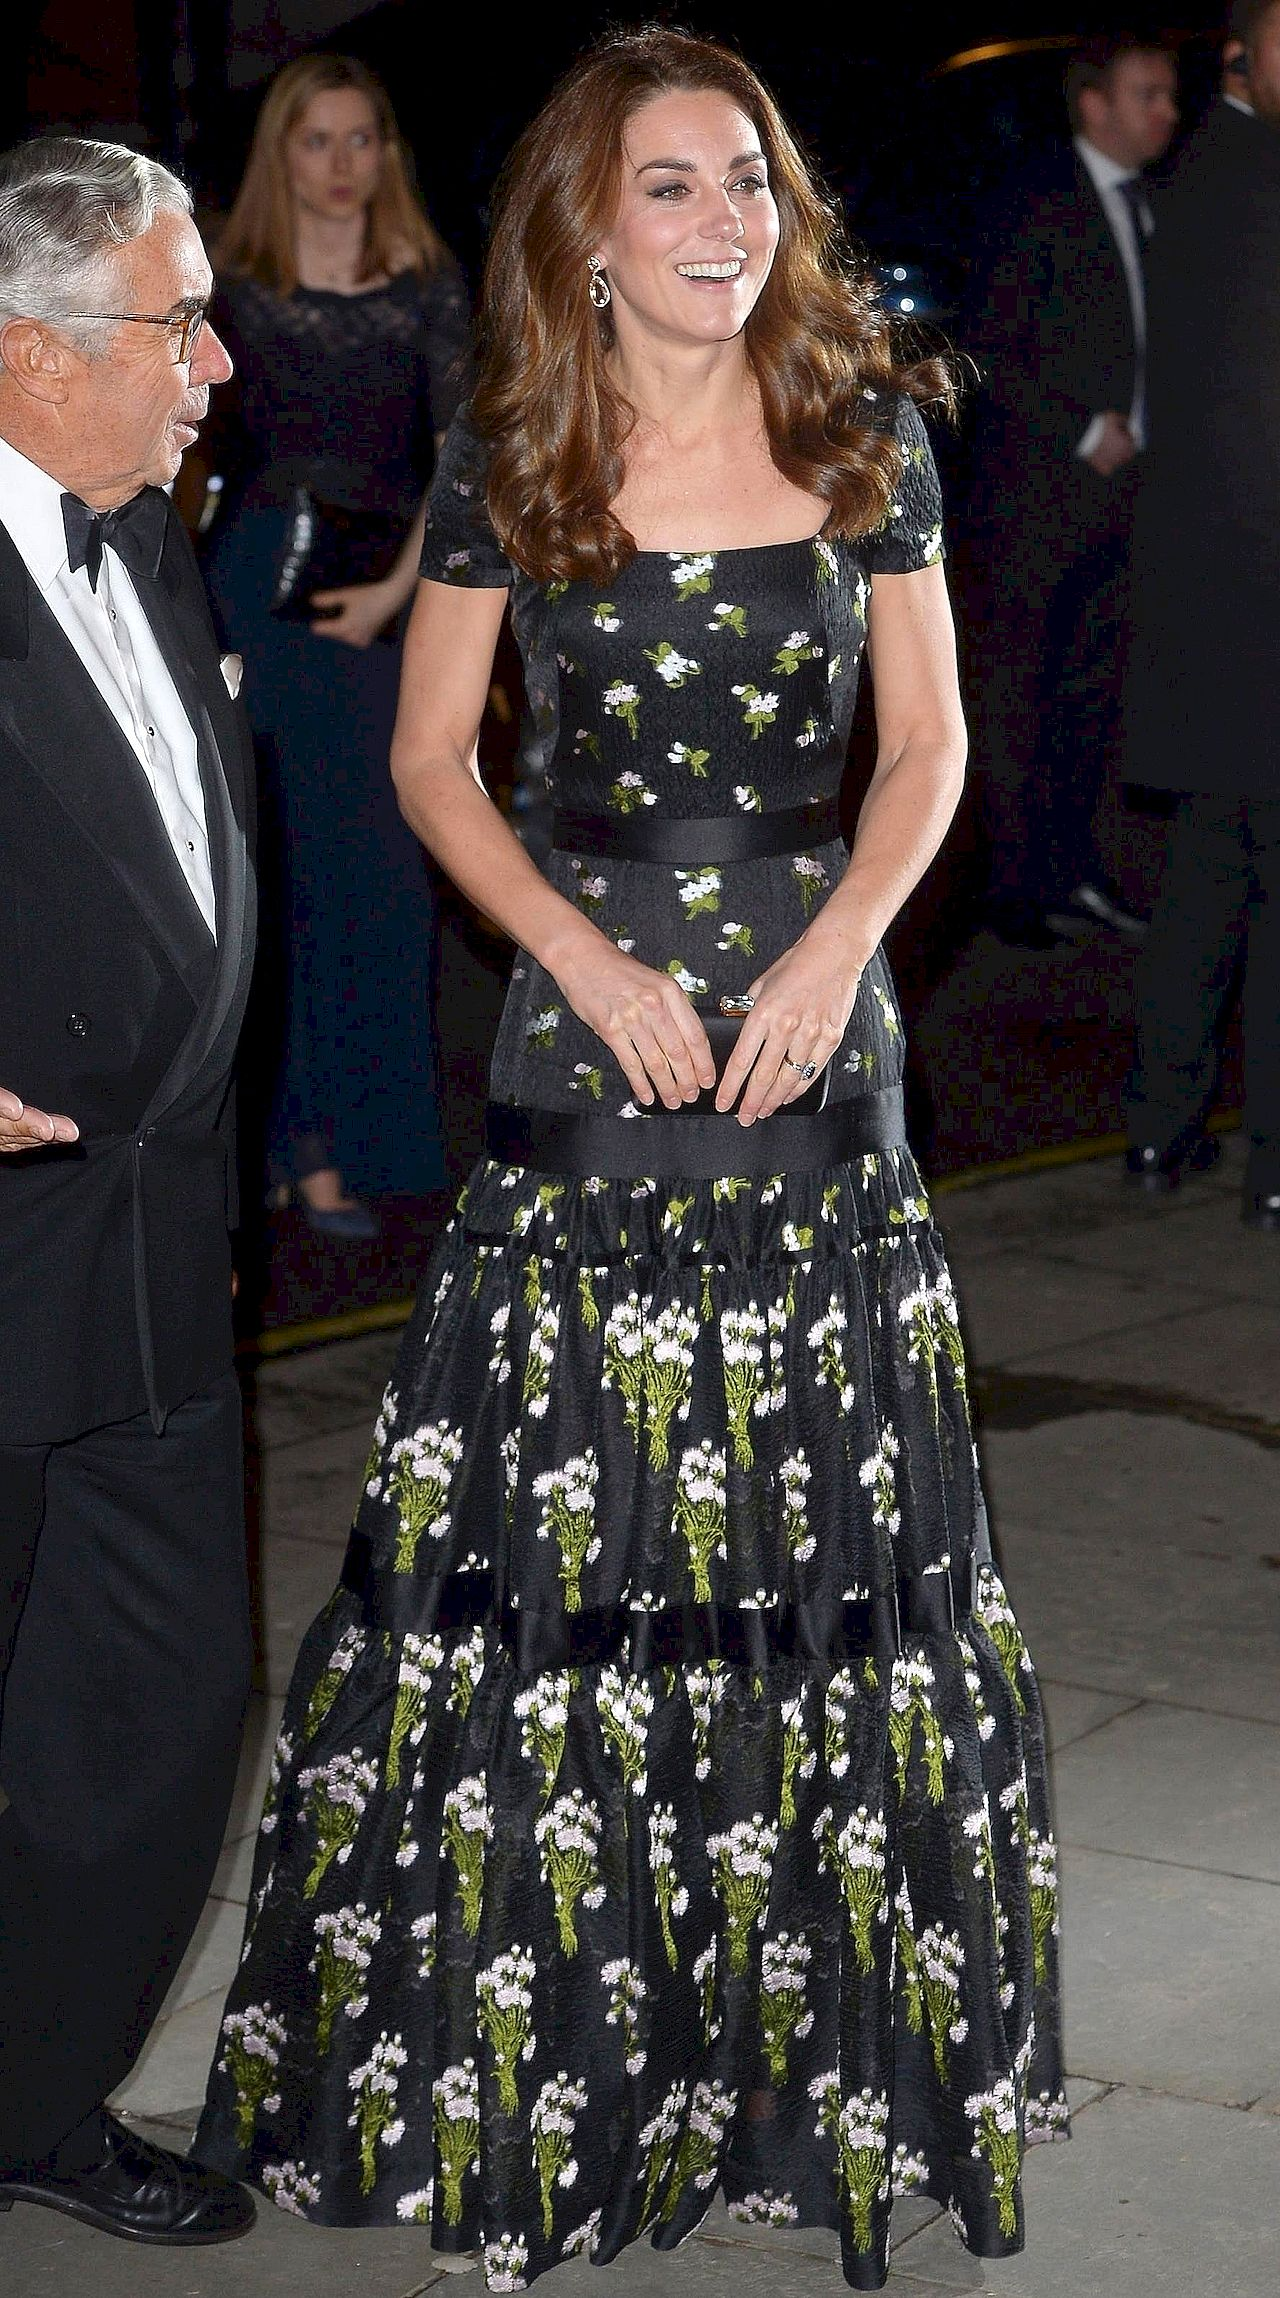 Celebrities attend National Portrait Gallery Gala Event / BACKGRID , kod: Catherine, Duchess of Cambridge, Kate Middleton